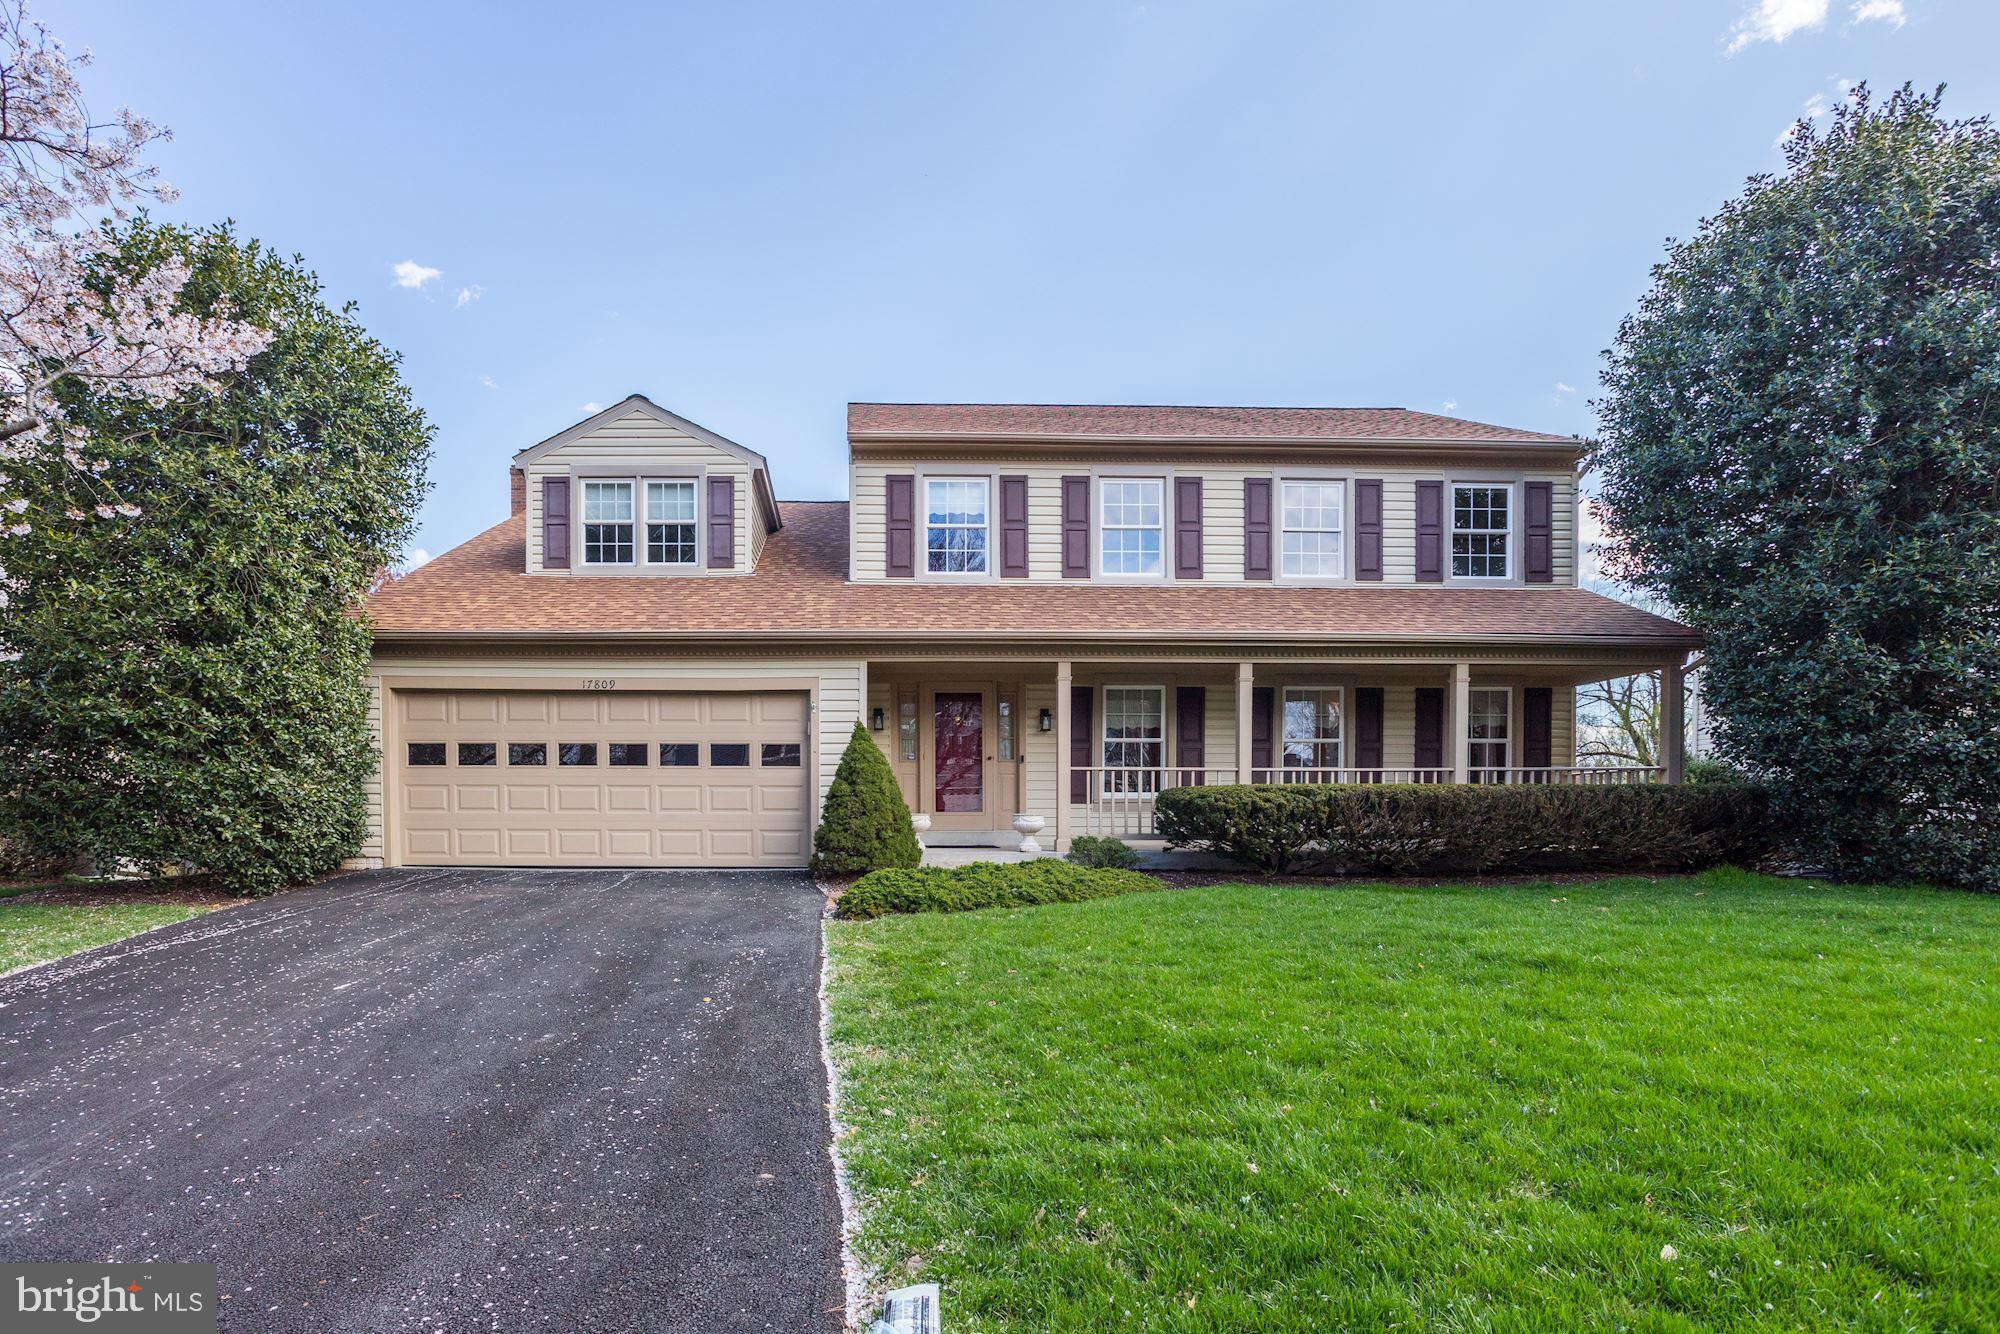 DON'T MISS THE 3D Virtual Tour. From the gracious front porch to the huge rear lot overlooking a bea